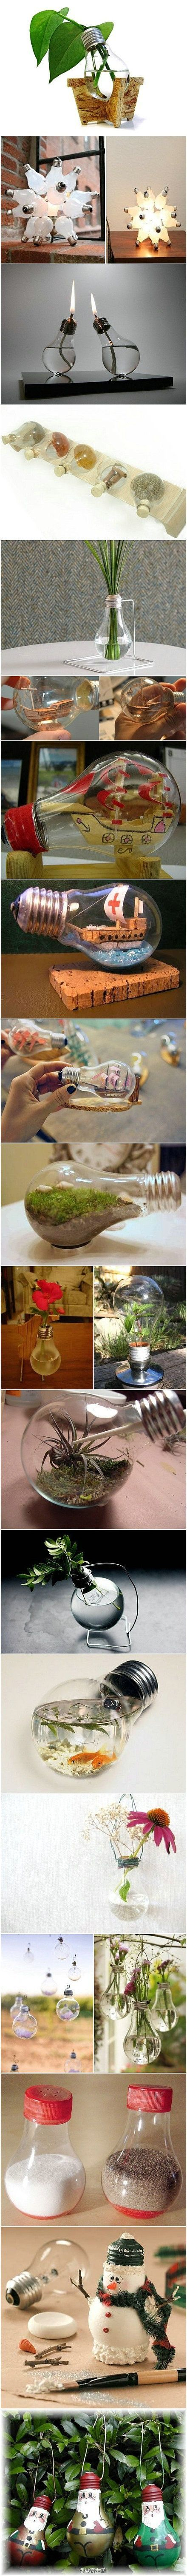 DIY Project: Recycled Light Bulbs